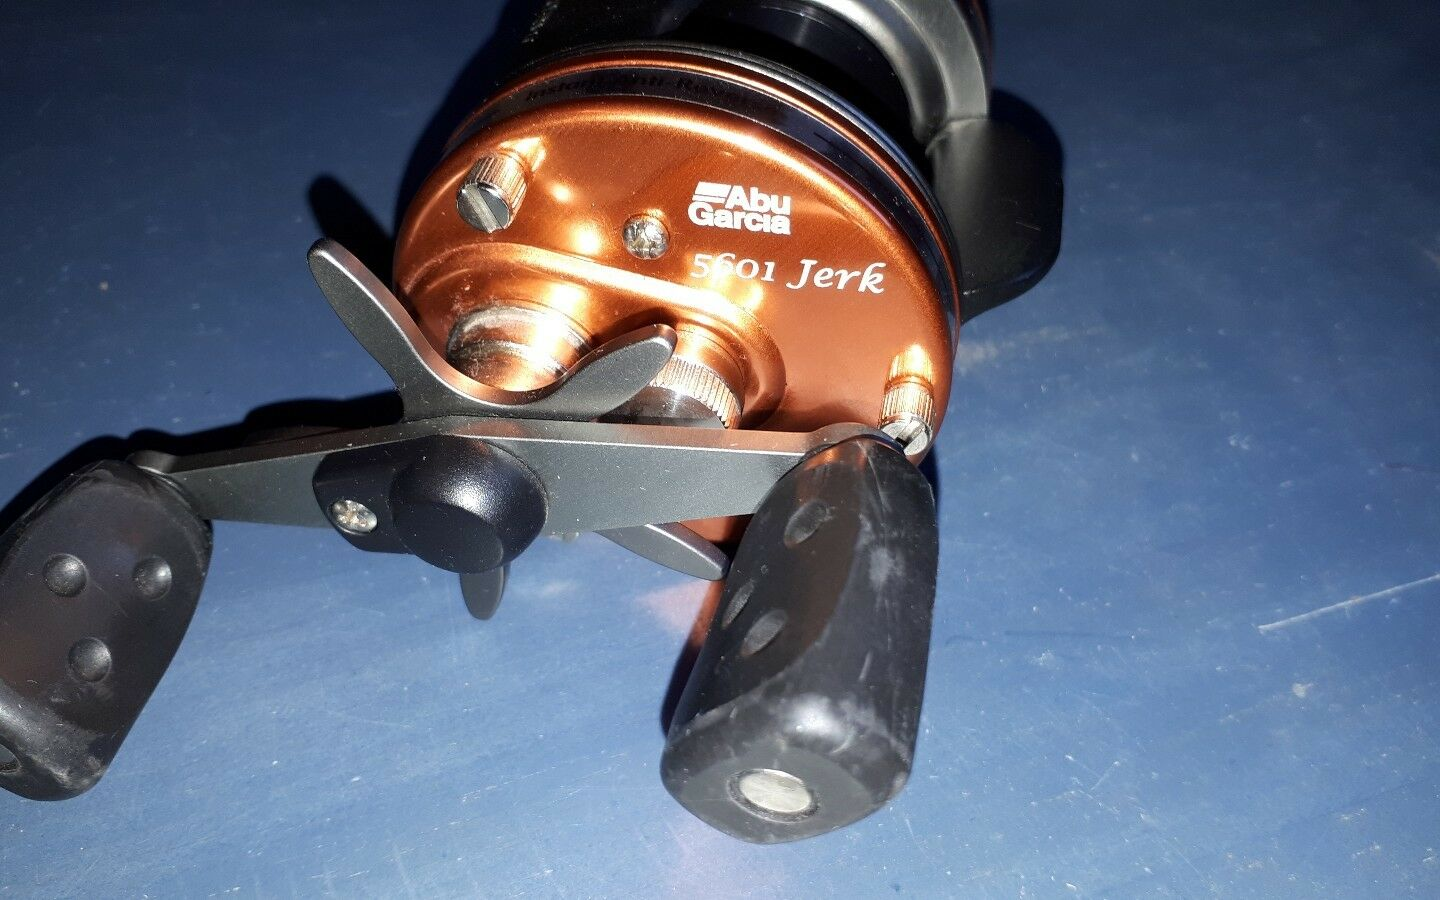 Abu Ambassadeur 5601 Jerk Made in Sweden neu Abu garcia 5601 Jerk in orange